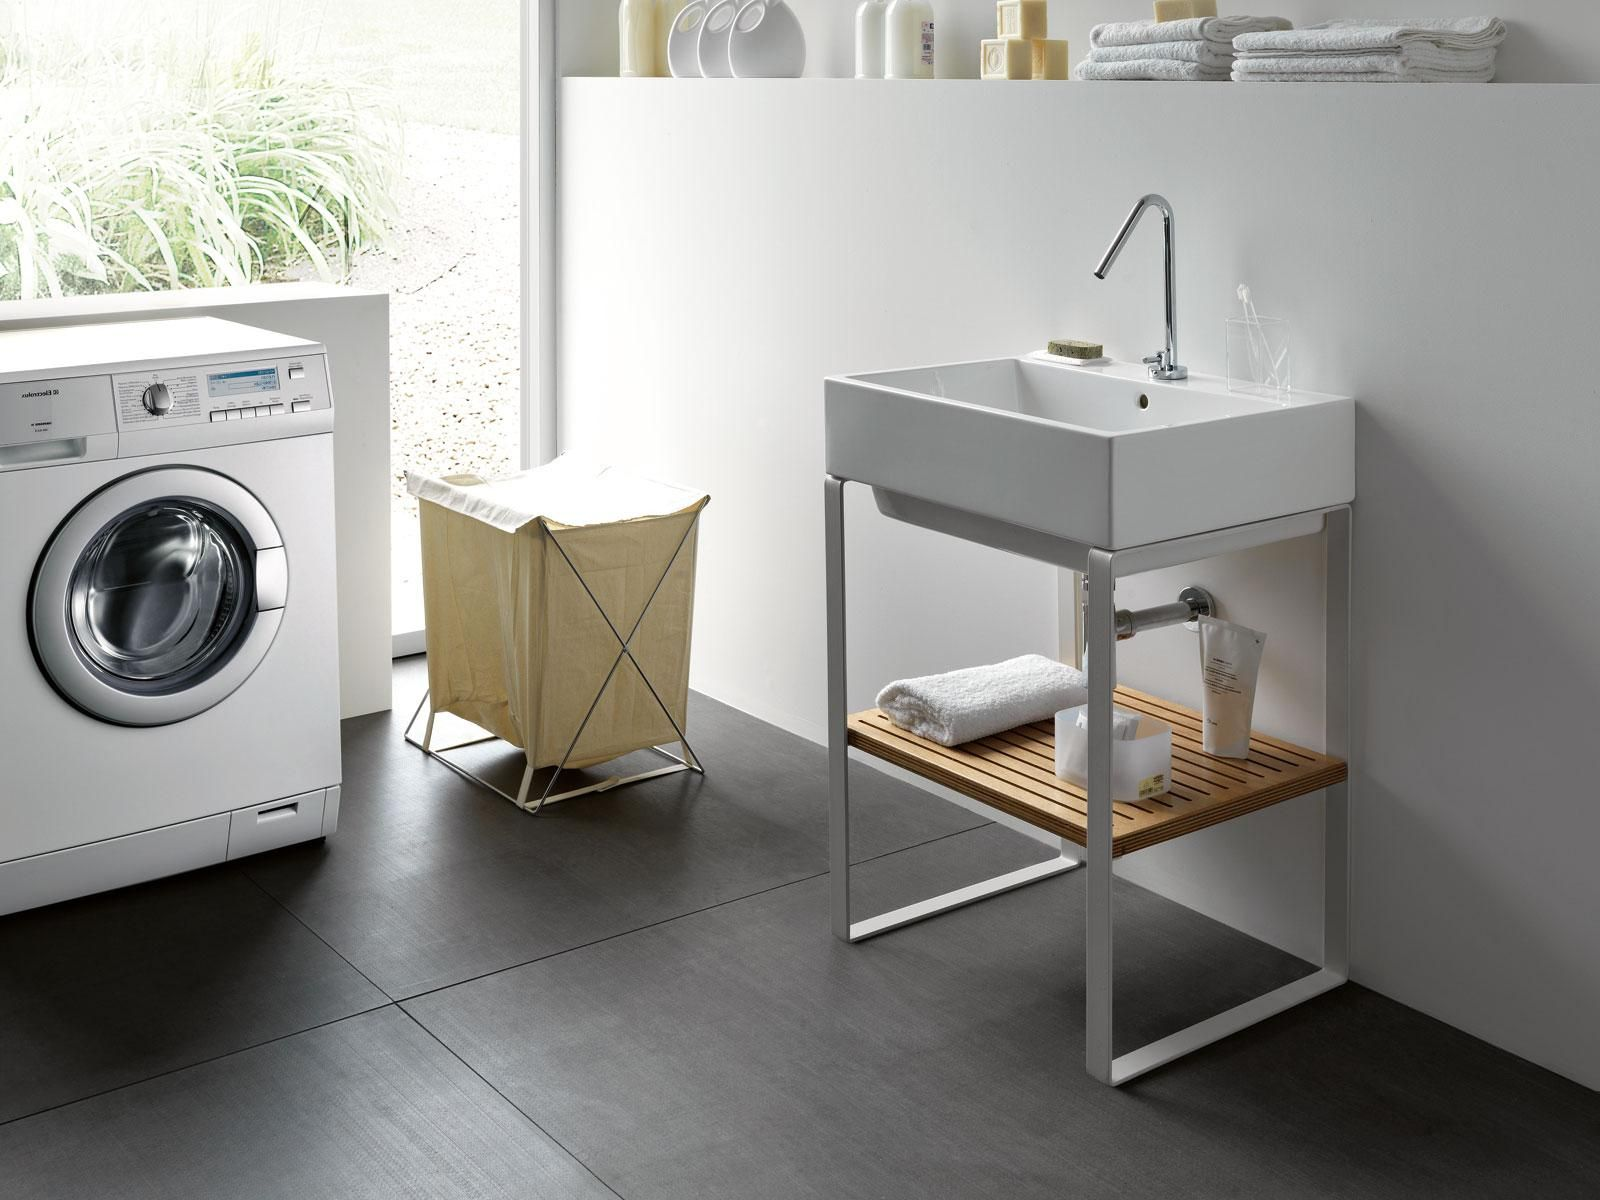 laundry room sink floor laundry laundry rooms rooms interior room ...